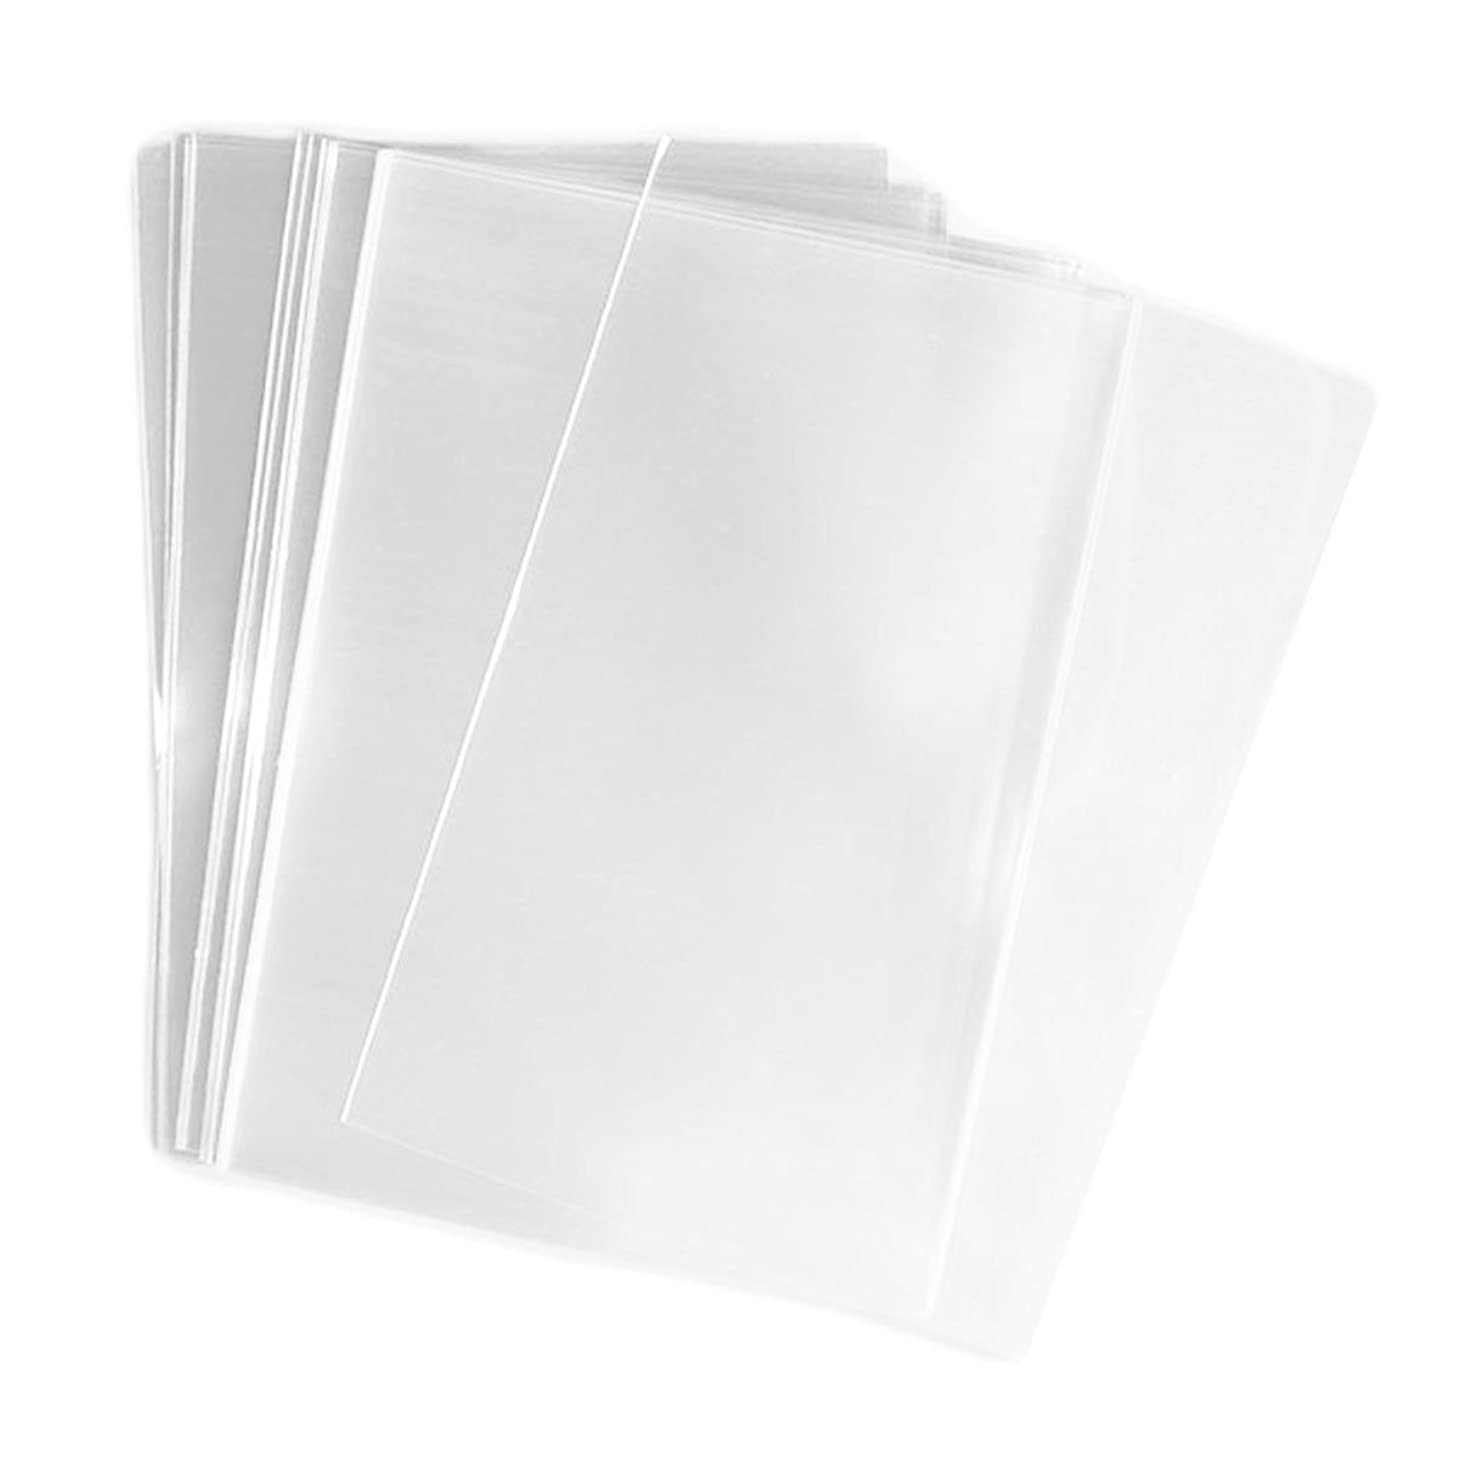 100Pcs 4x6 Inch Clear Flat Cello/Cellophane Treat Bag Gift Party Wedding Favor Bags for Bakery, Cookies, Candies Supplies